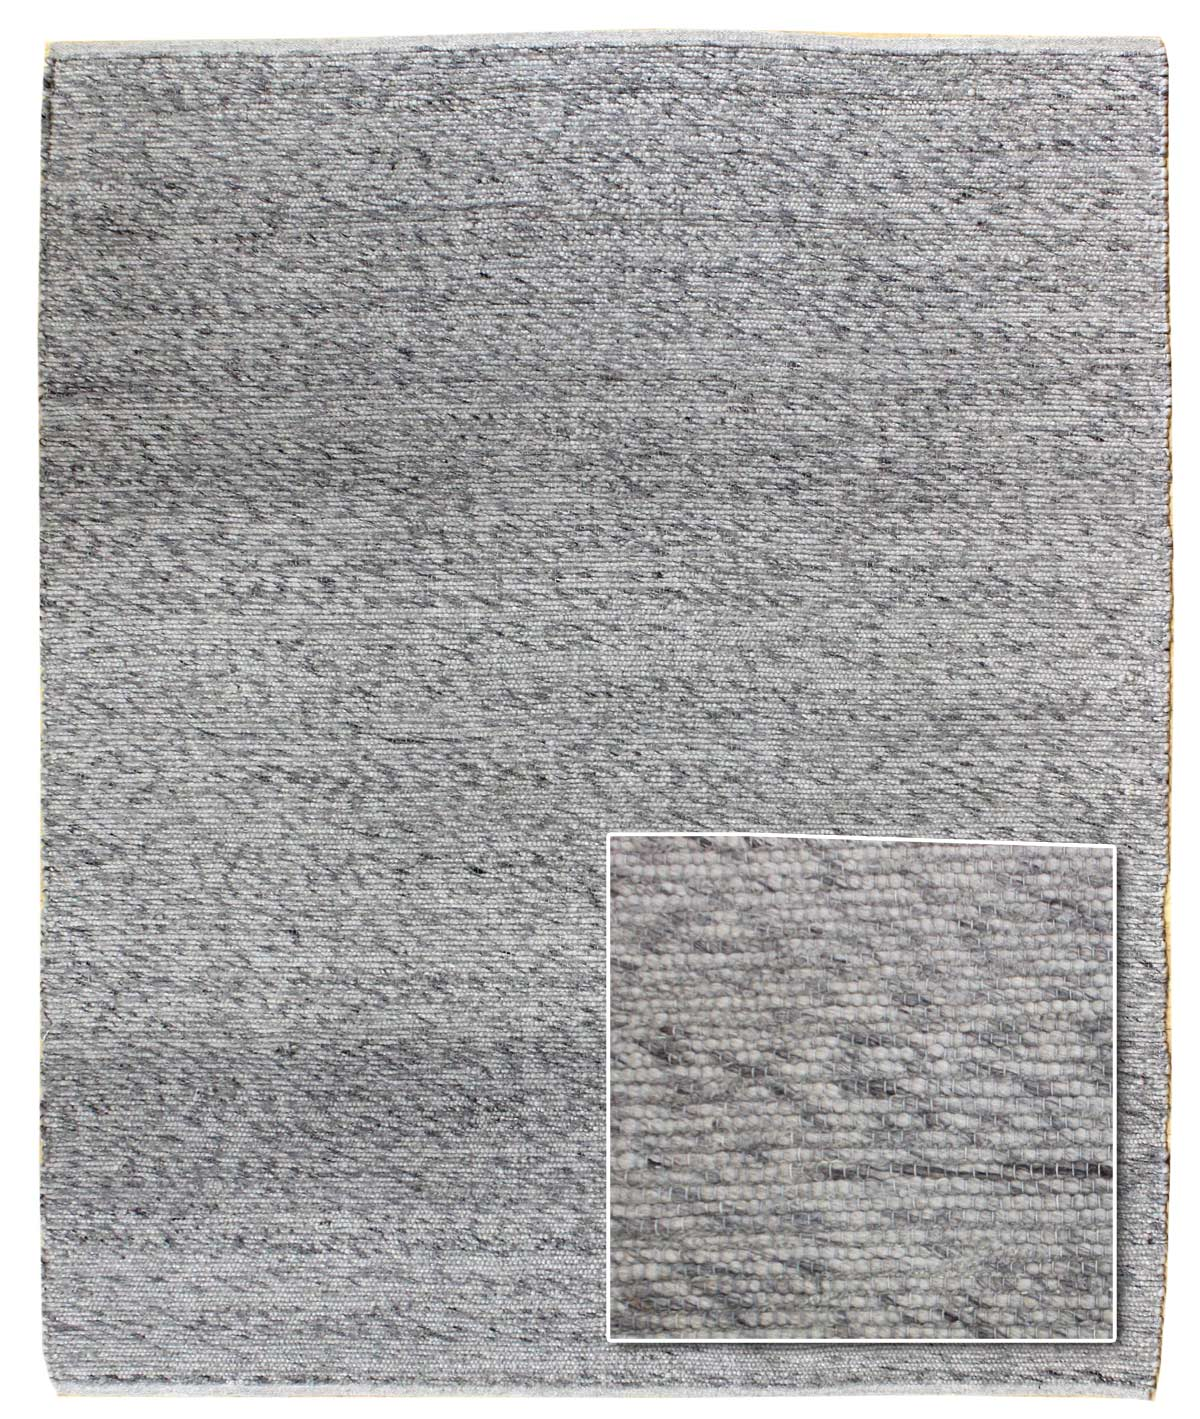 Twirl Handwoven Contemporary Rug